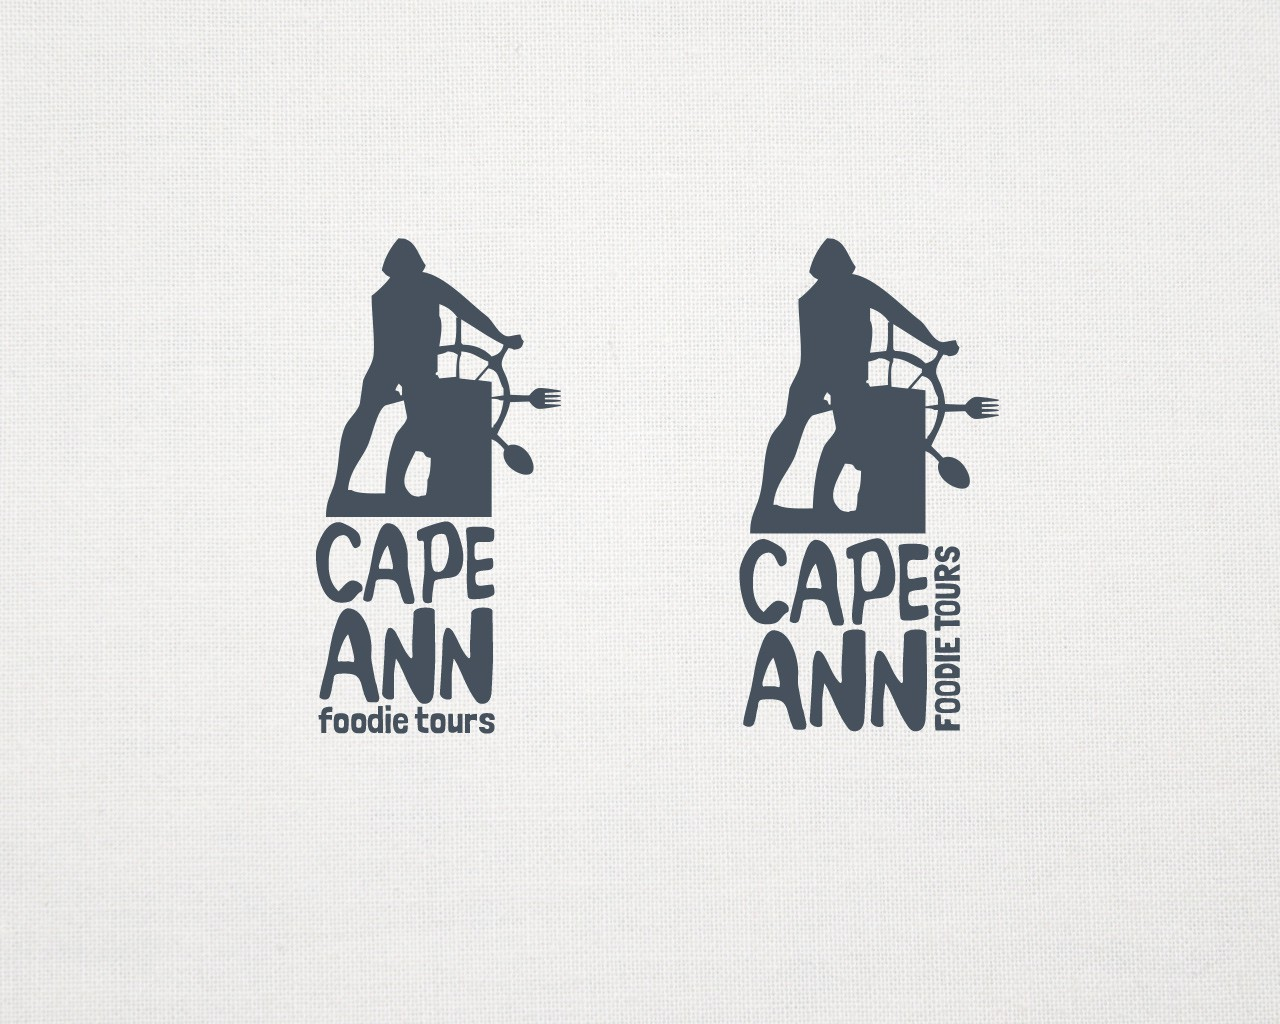 Cape Ann Foodie Tours needs a new logo